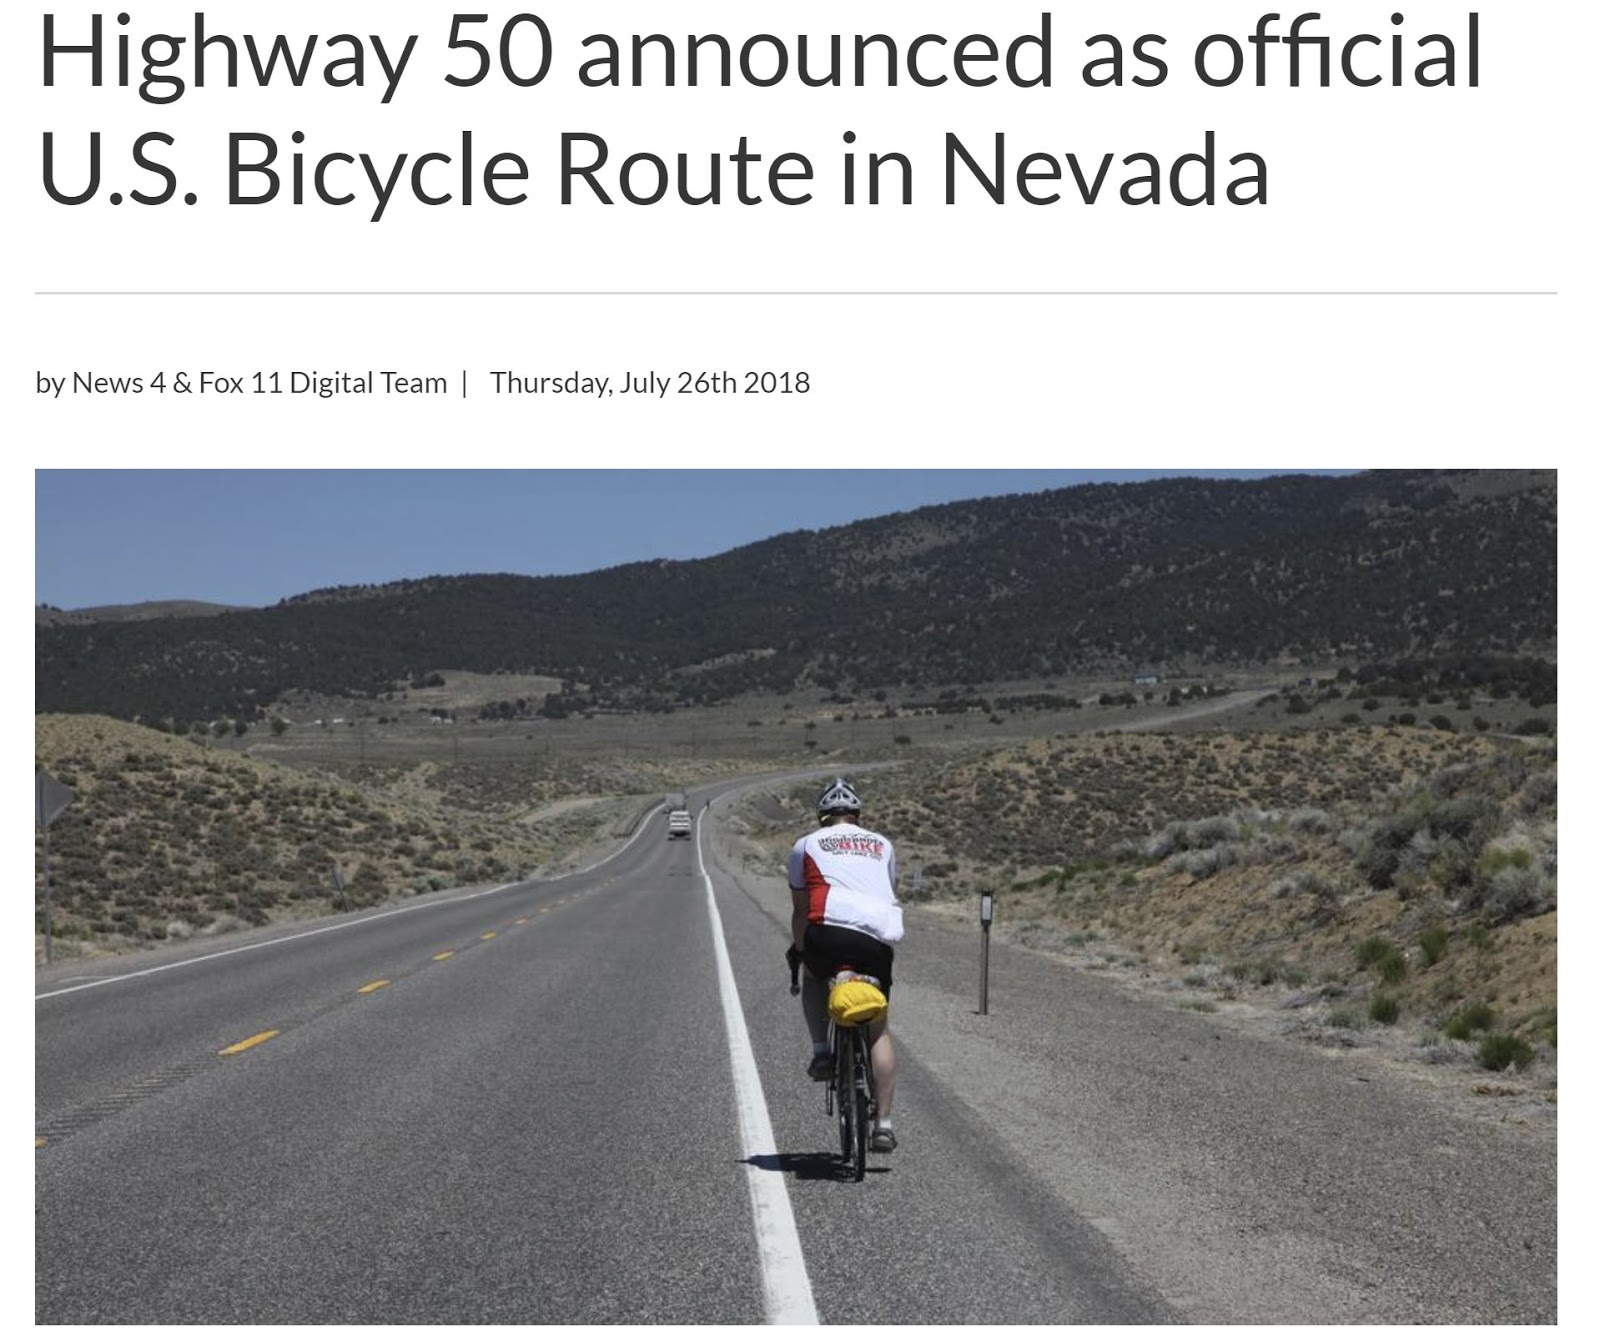 nevada s first officail us bicycle route